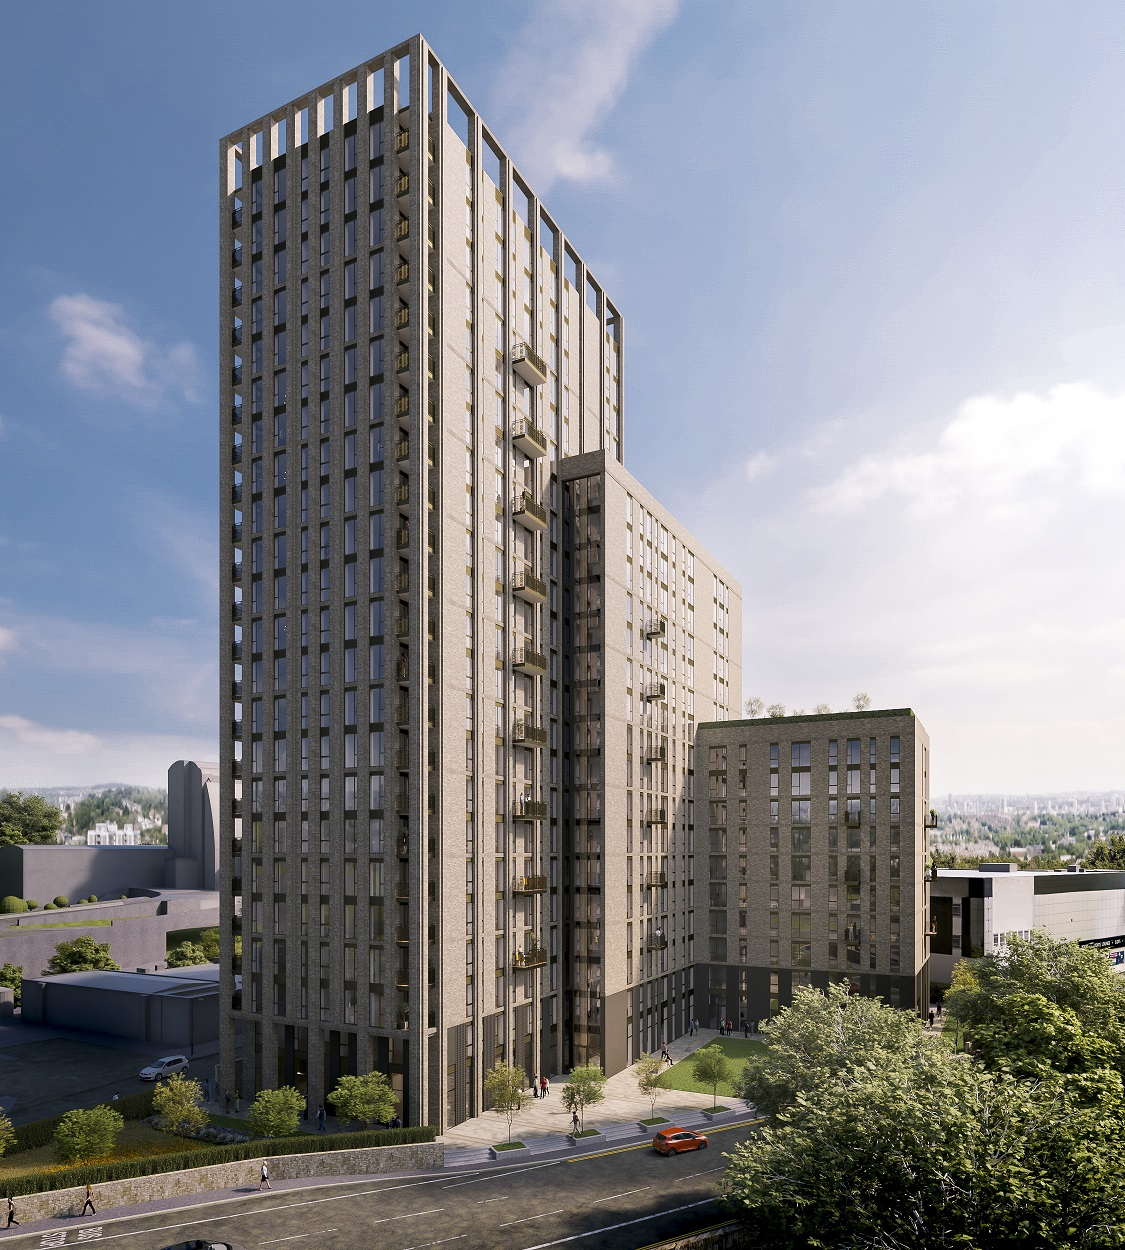 Plans in for 336 build-to-rent apartments in Sheffield